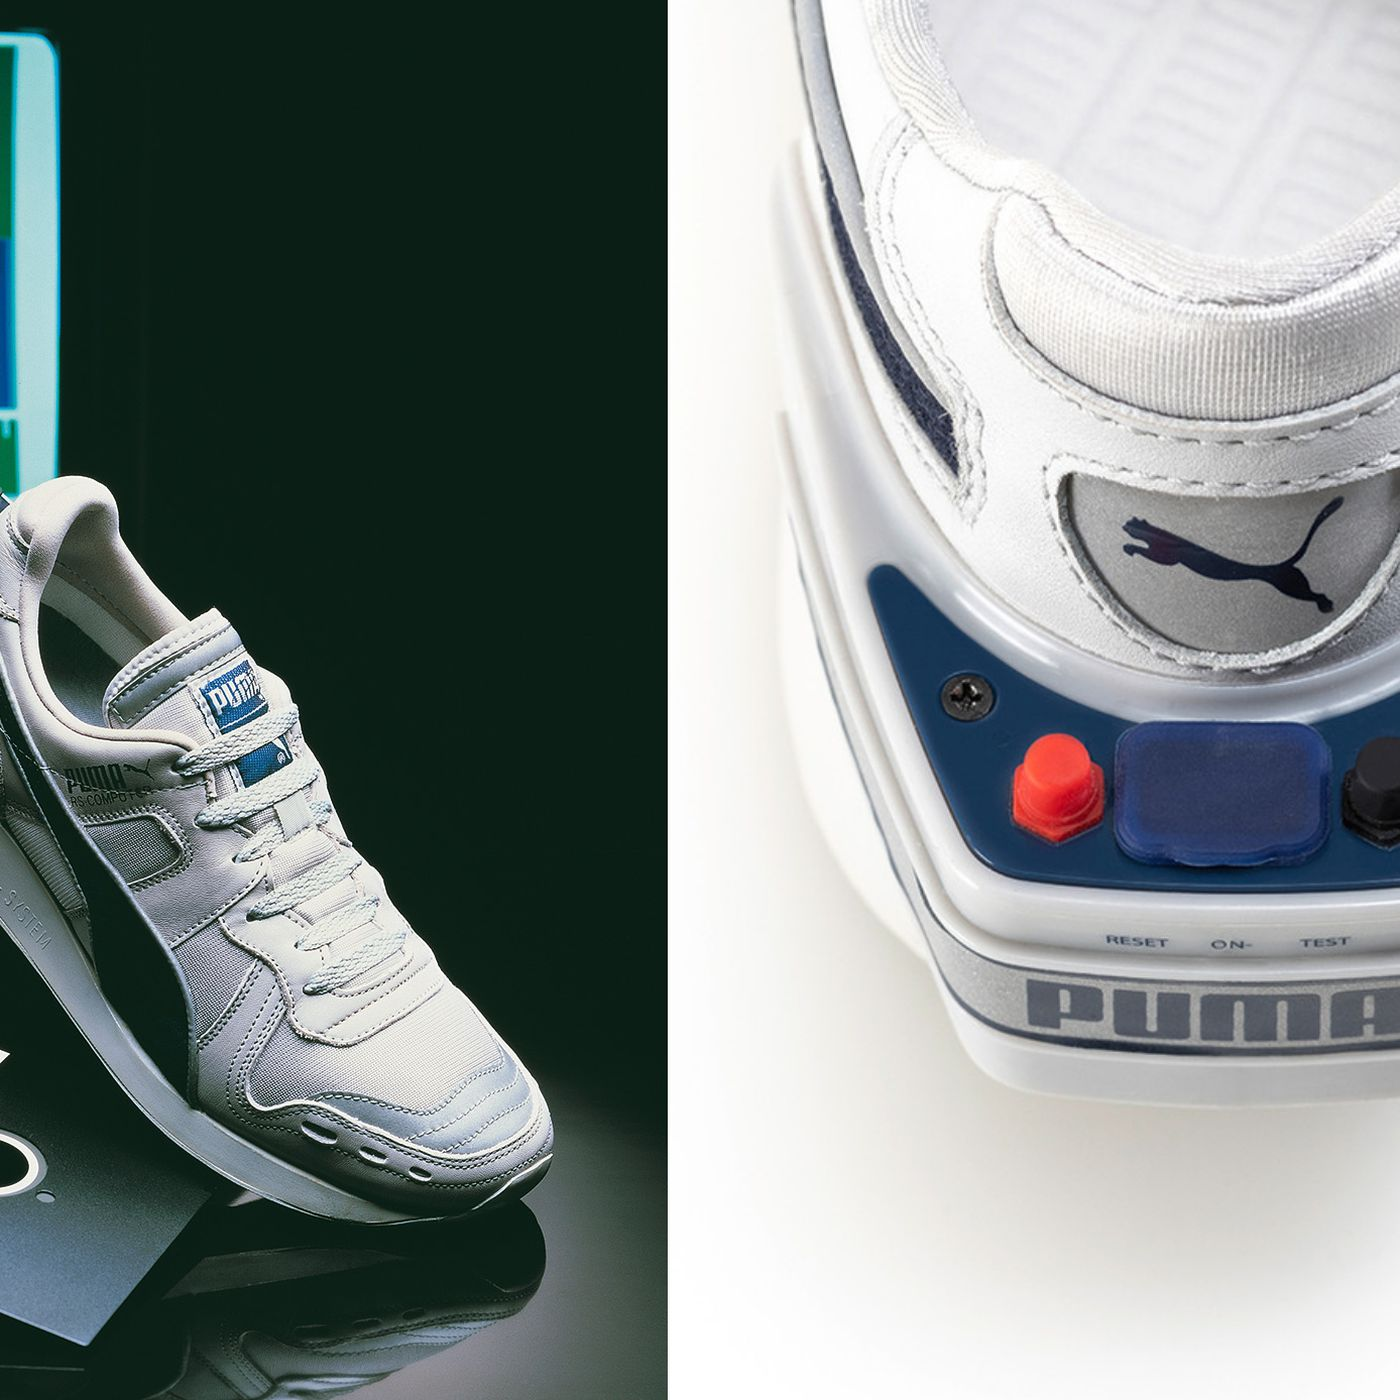 cd9d5ac0fa0e Puma is rereleasing its classic 1986 RS-Computer running shoe - The Verge